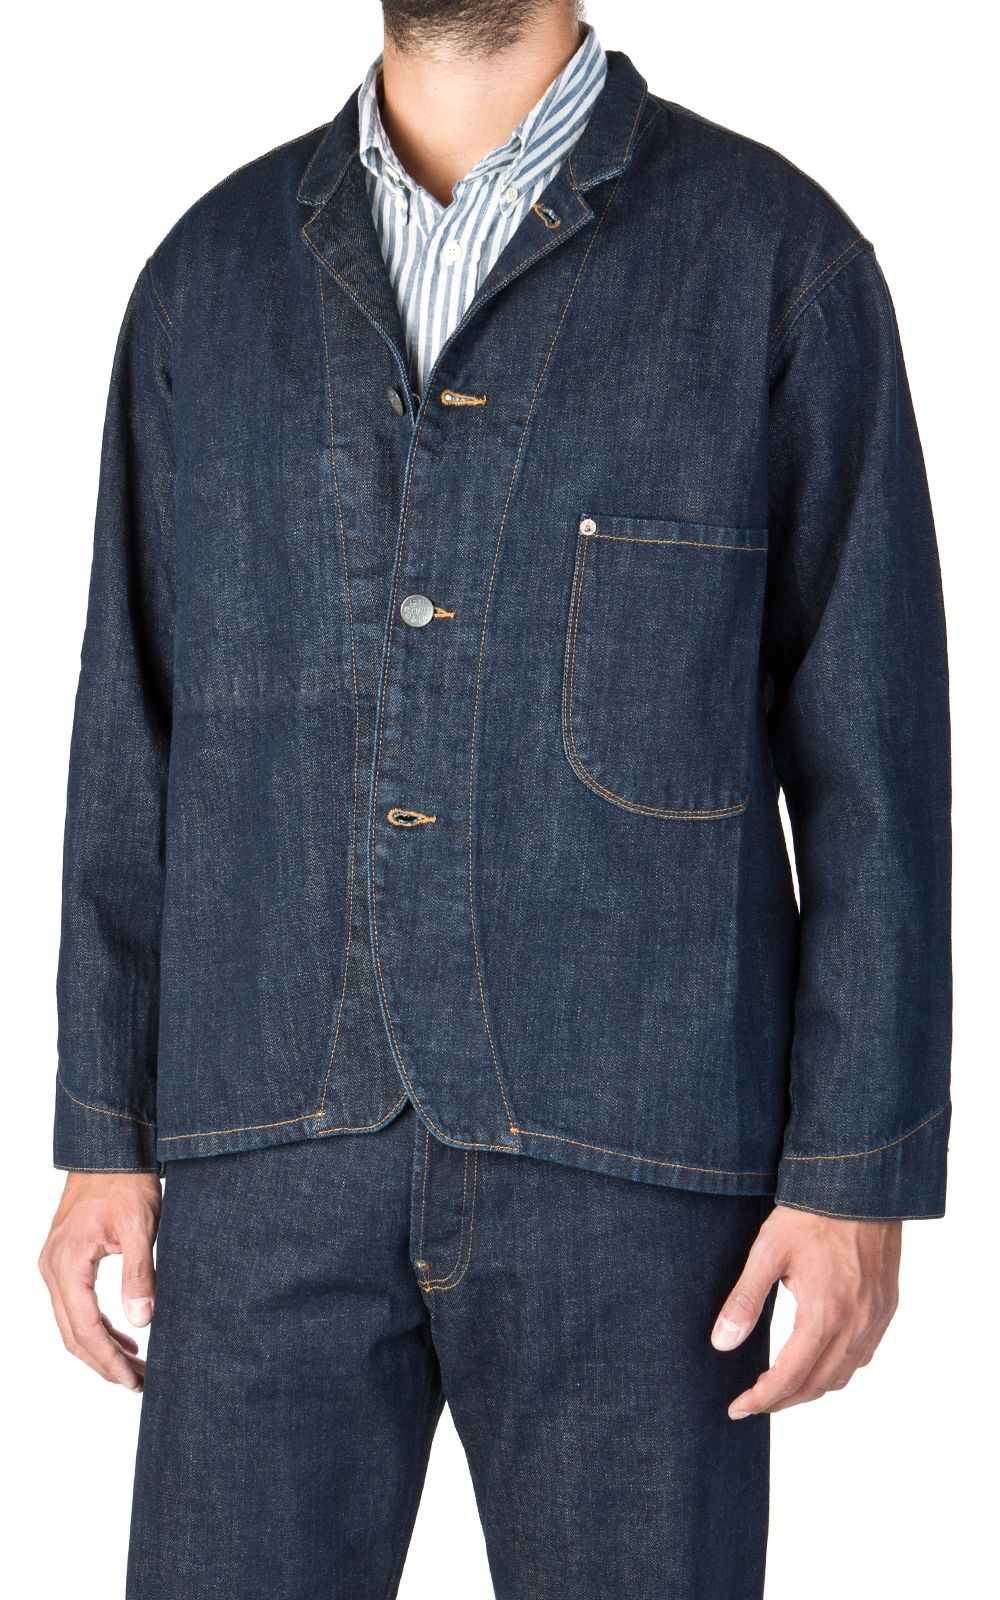 Levi's Vintage Clothing - true to the original workwear